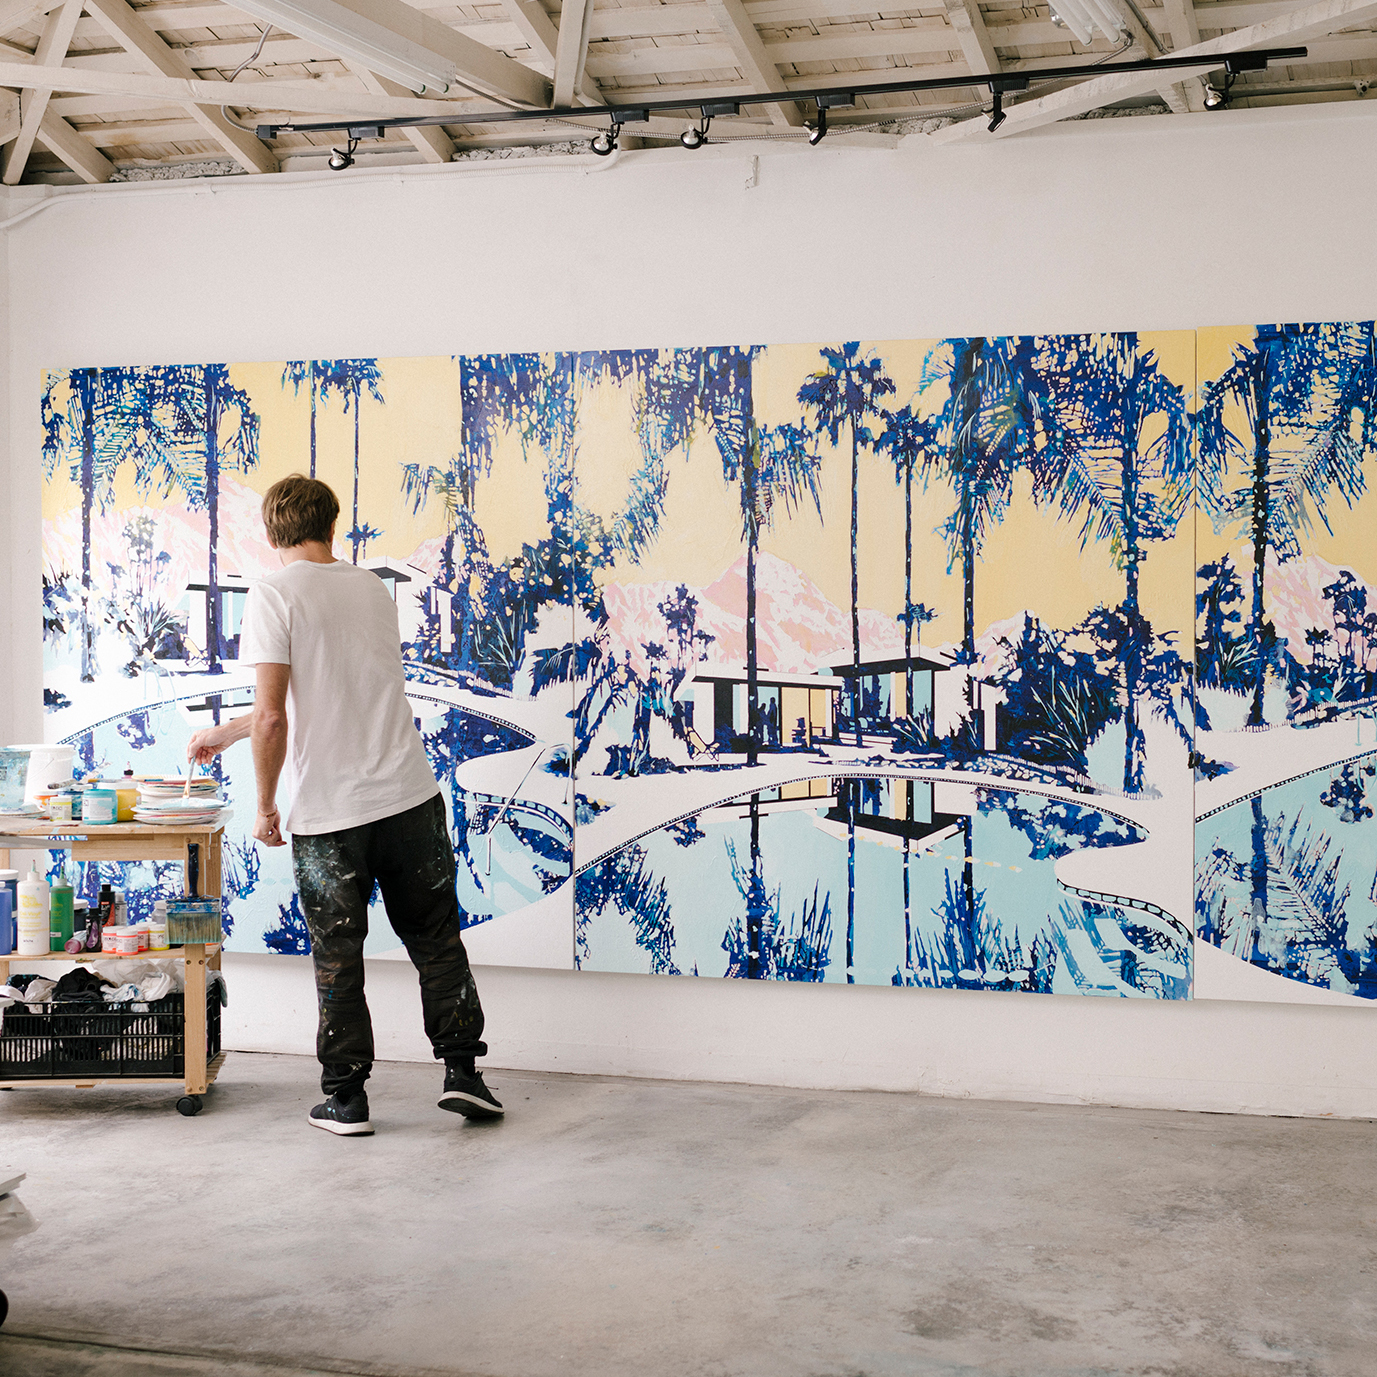 man painting a large mural in a studio